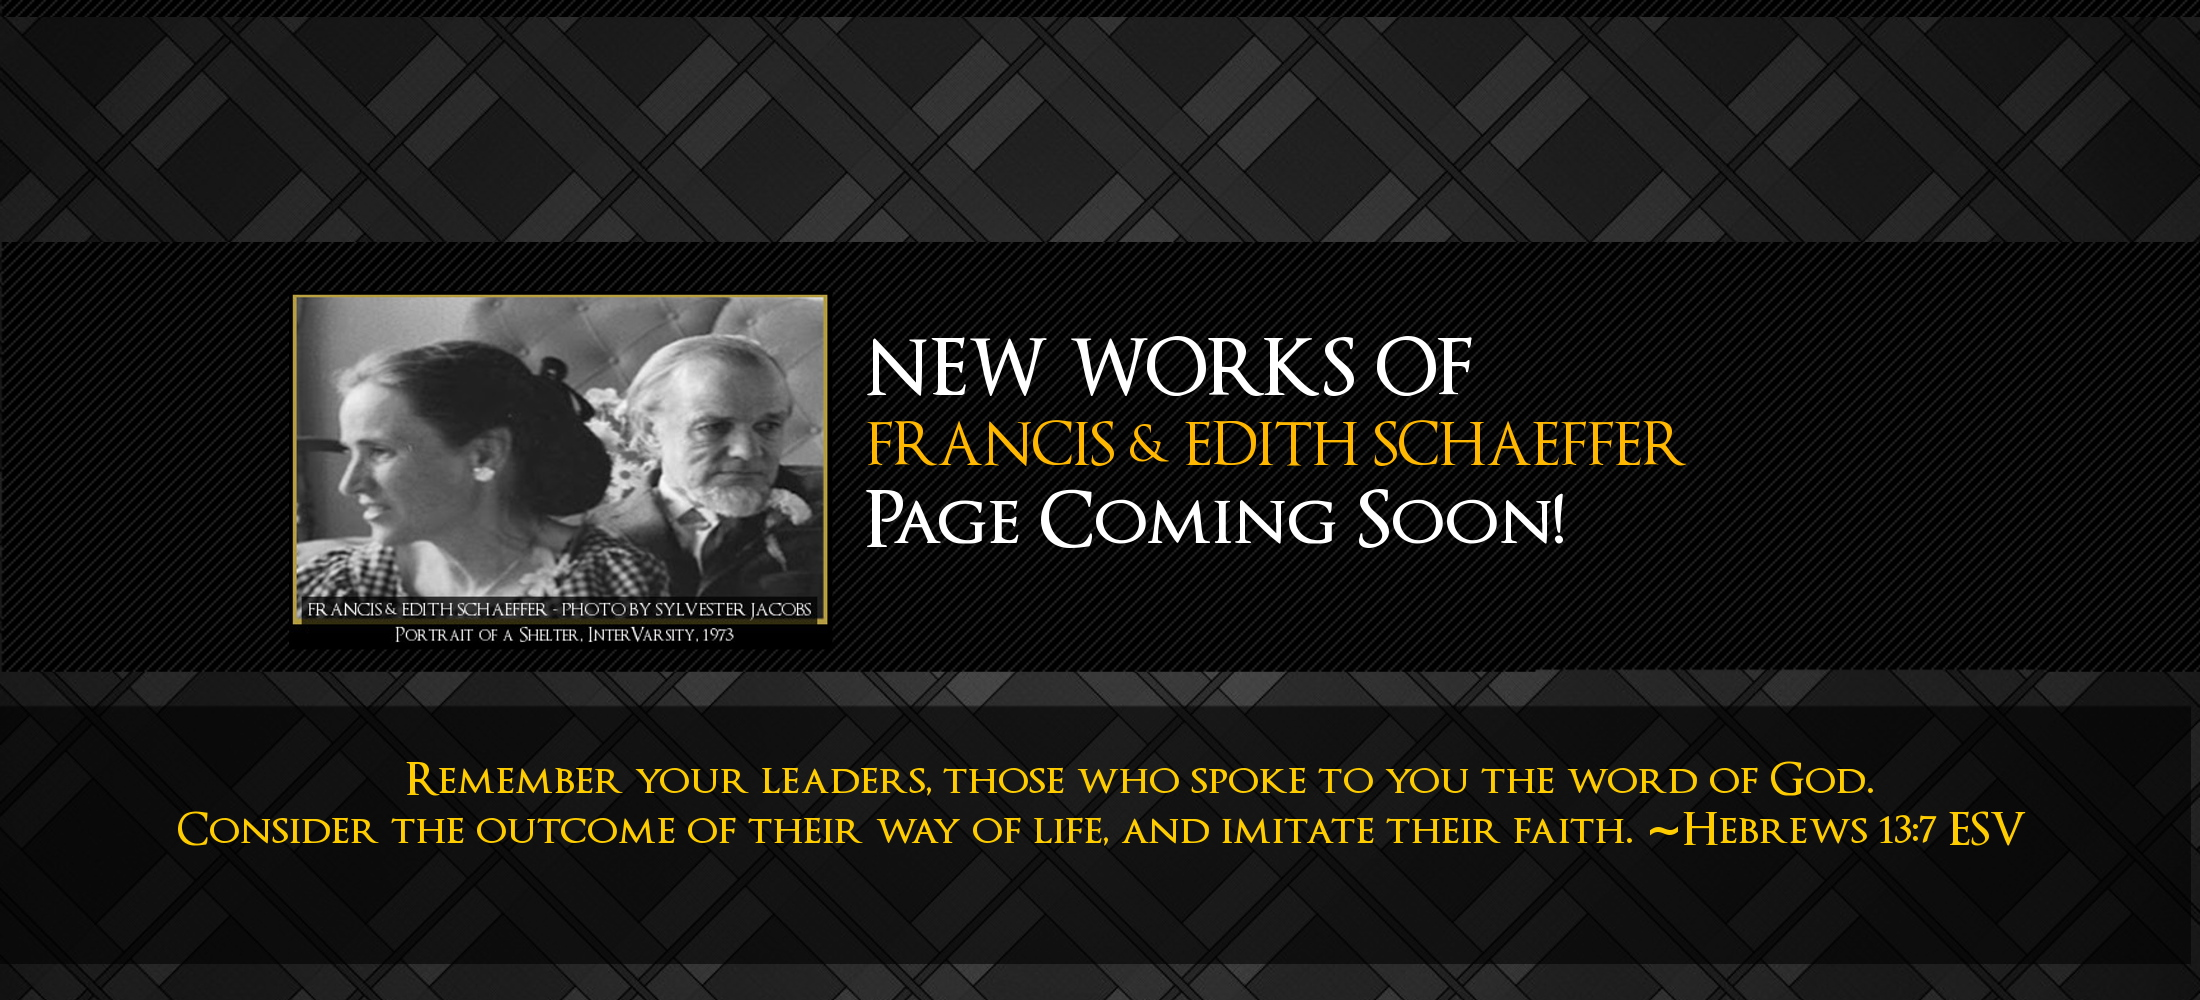 New Works of Francis & Edith Schaeffer, COMING SOON!